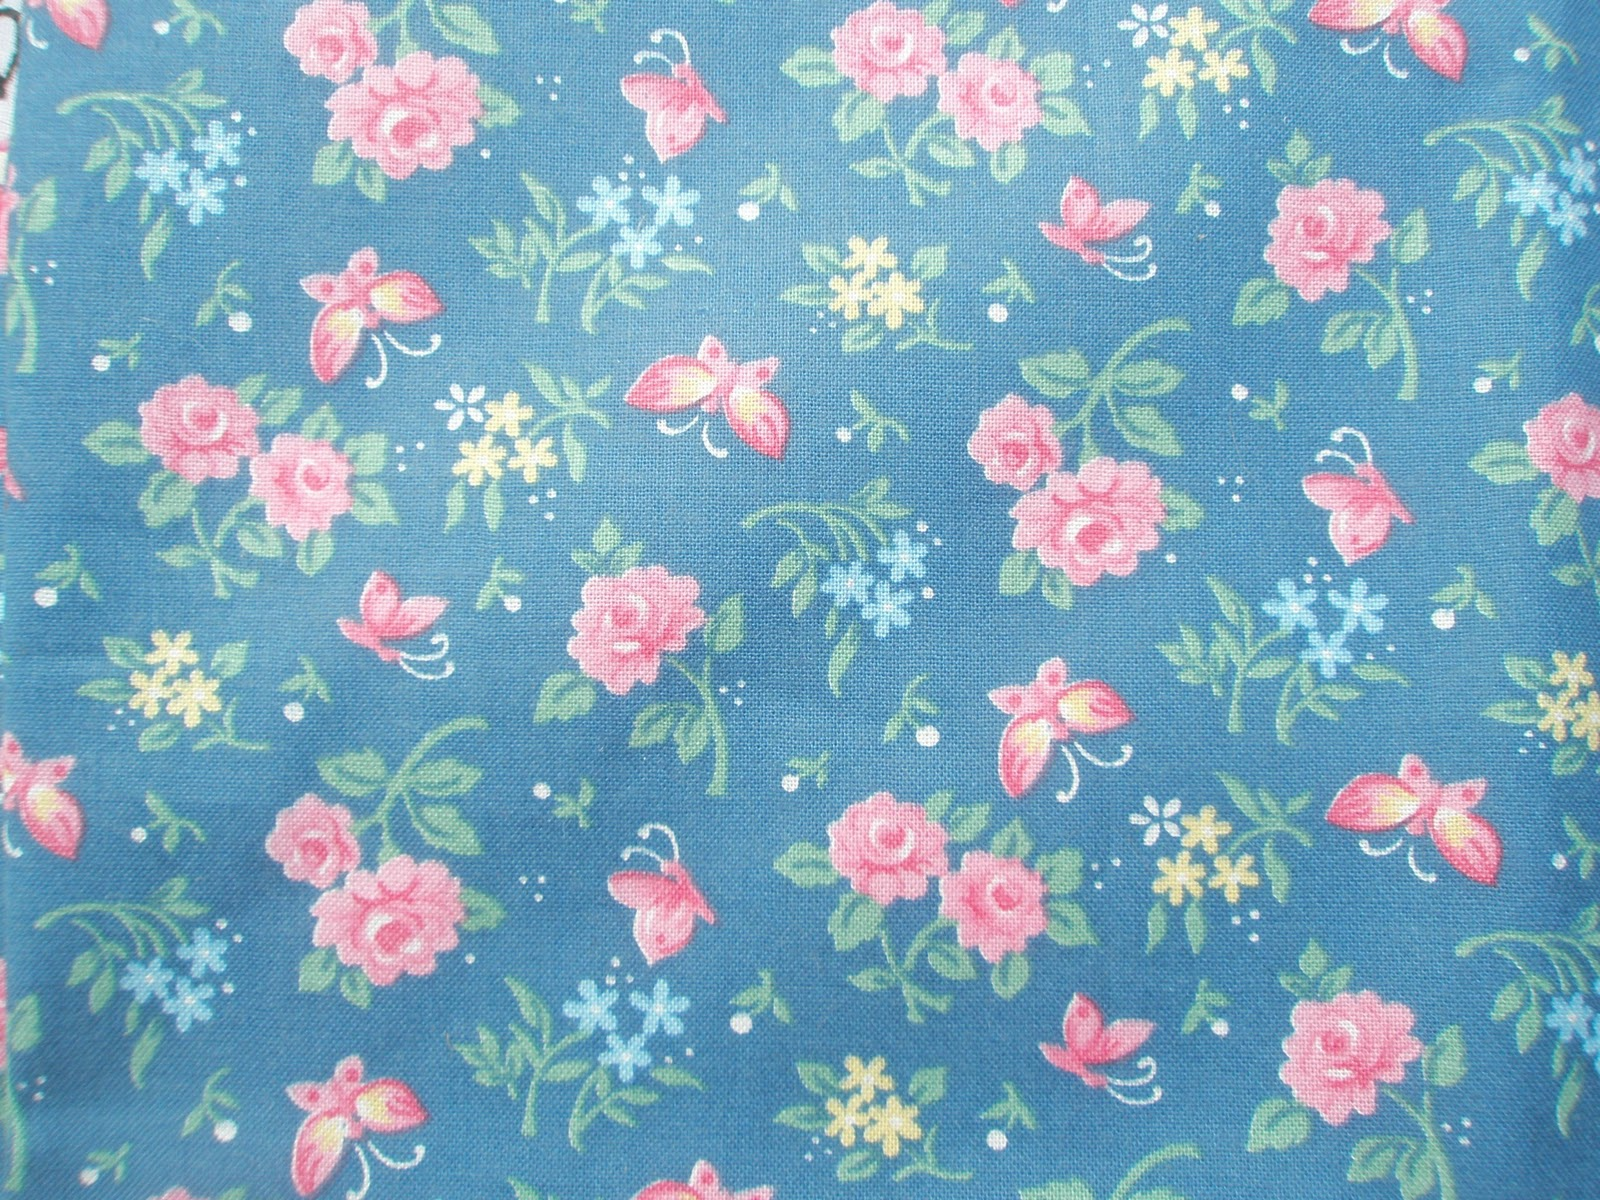 Free Download Flower Tumblr Backgrounds Ws0hfurn Blue Flowers